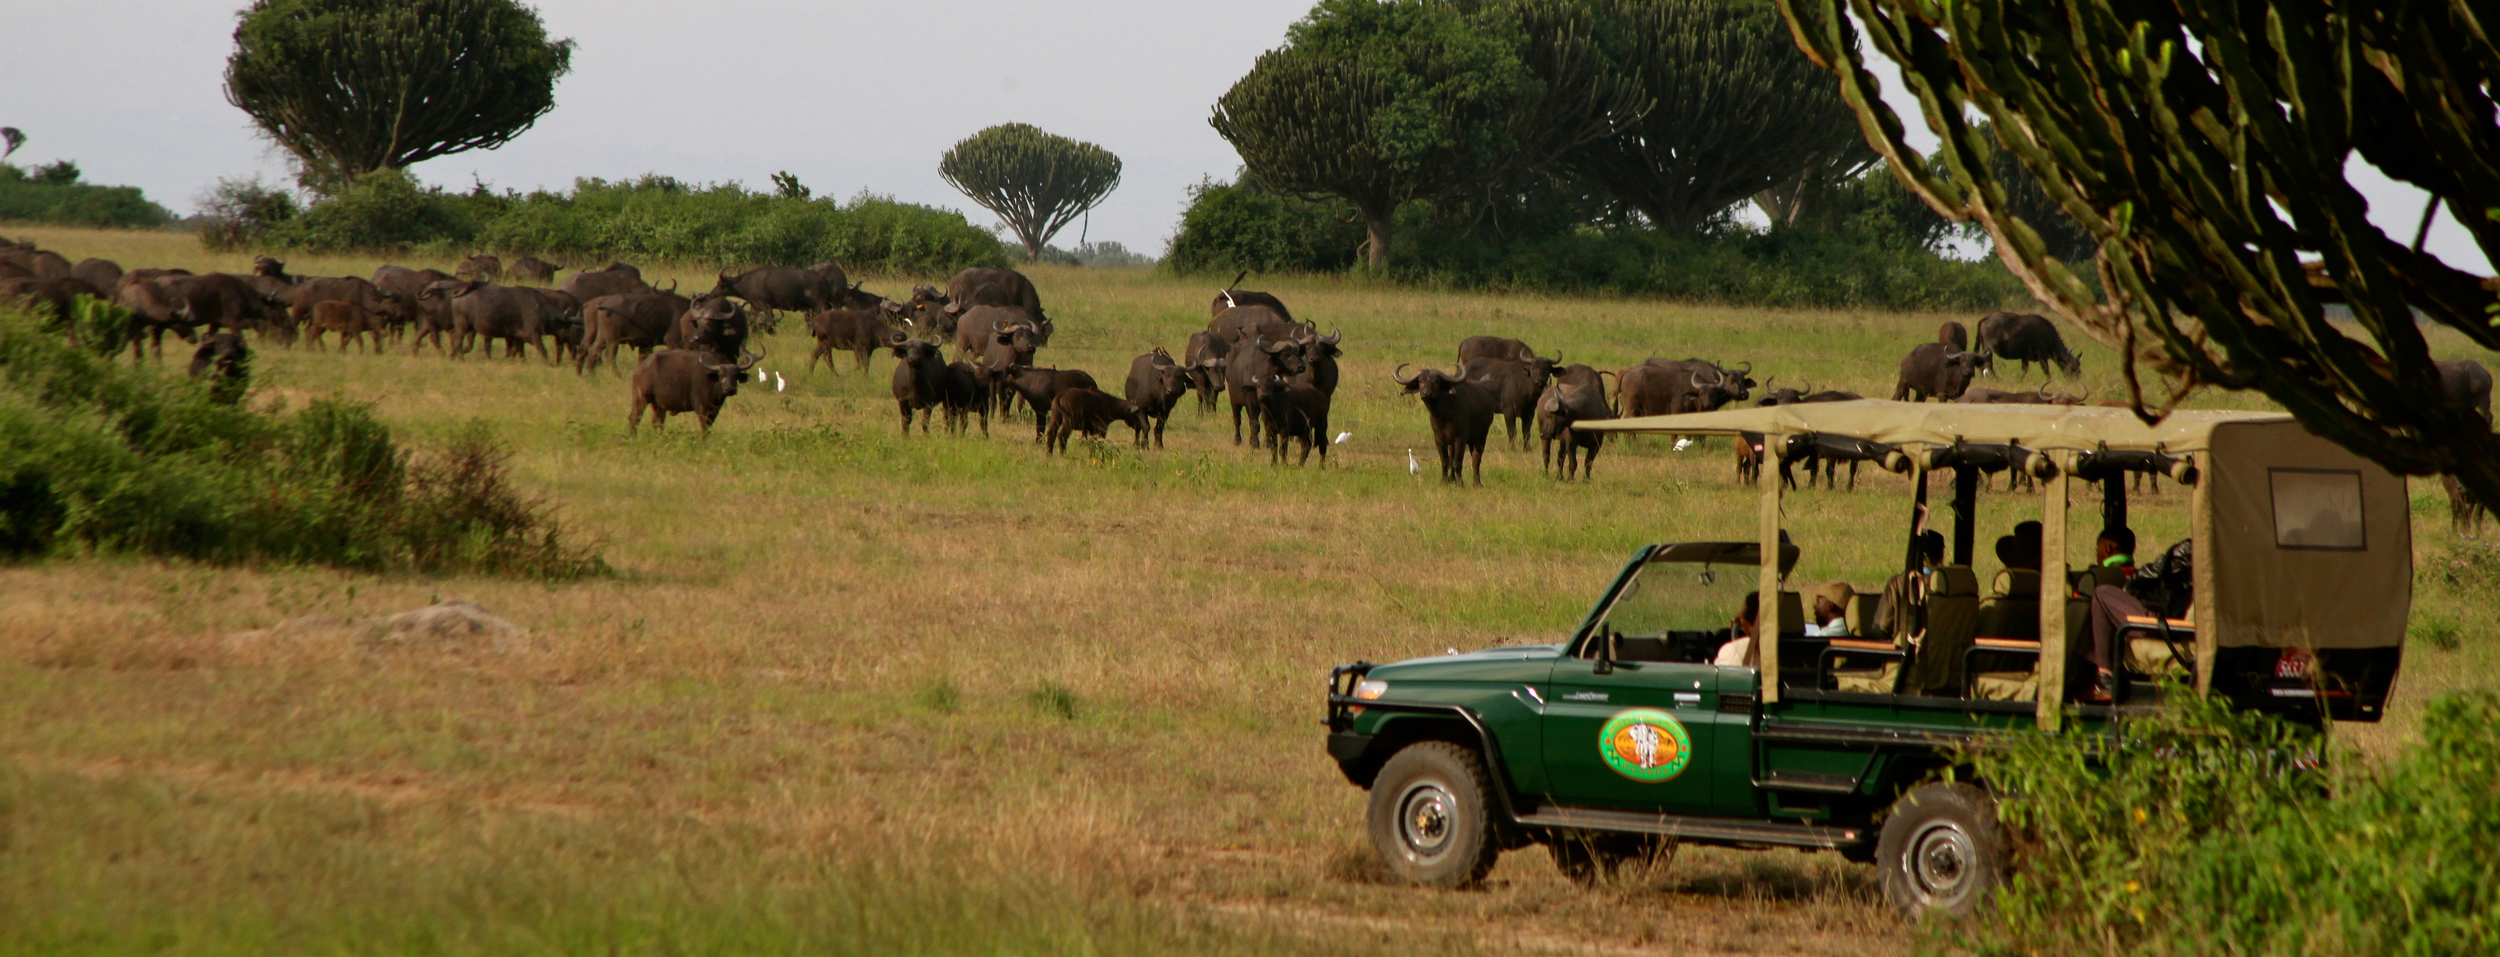 mweya_safari_lodge_safari_drive-hi.jpg